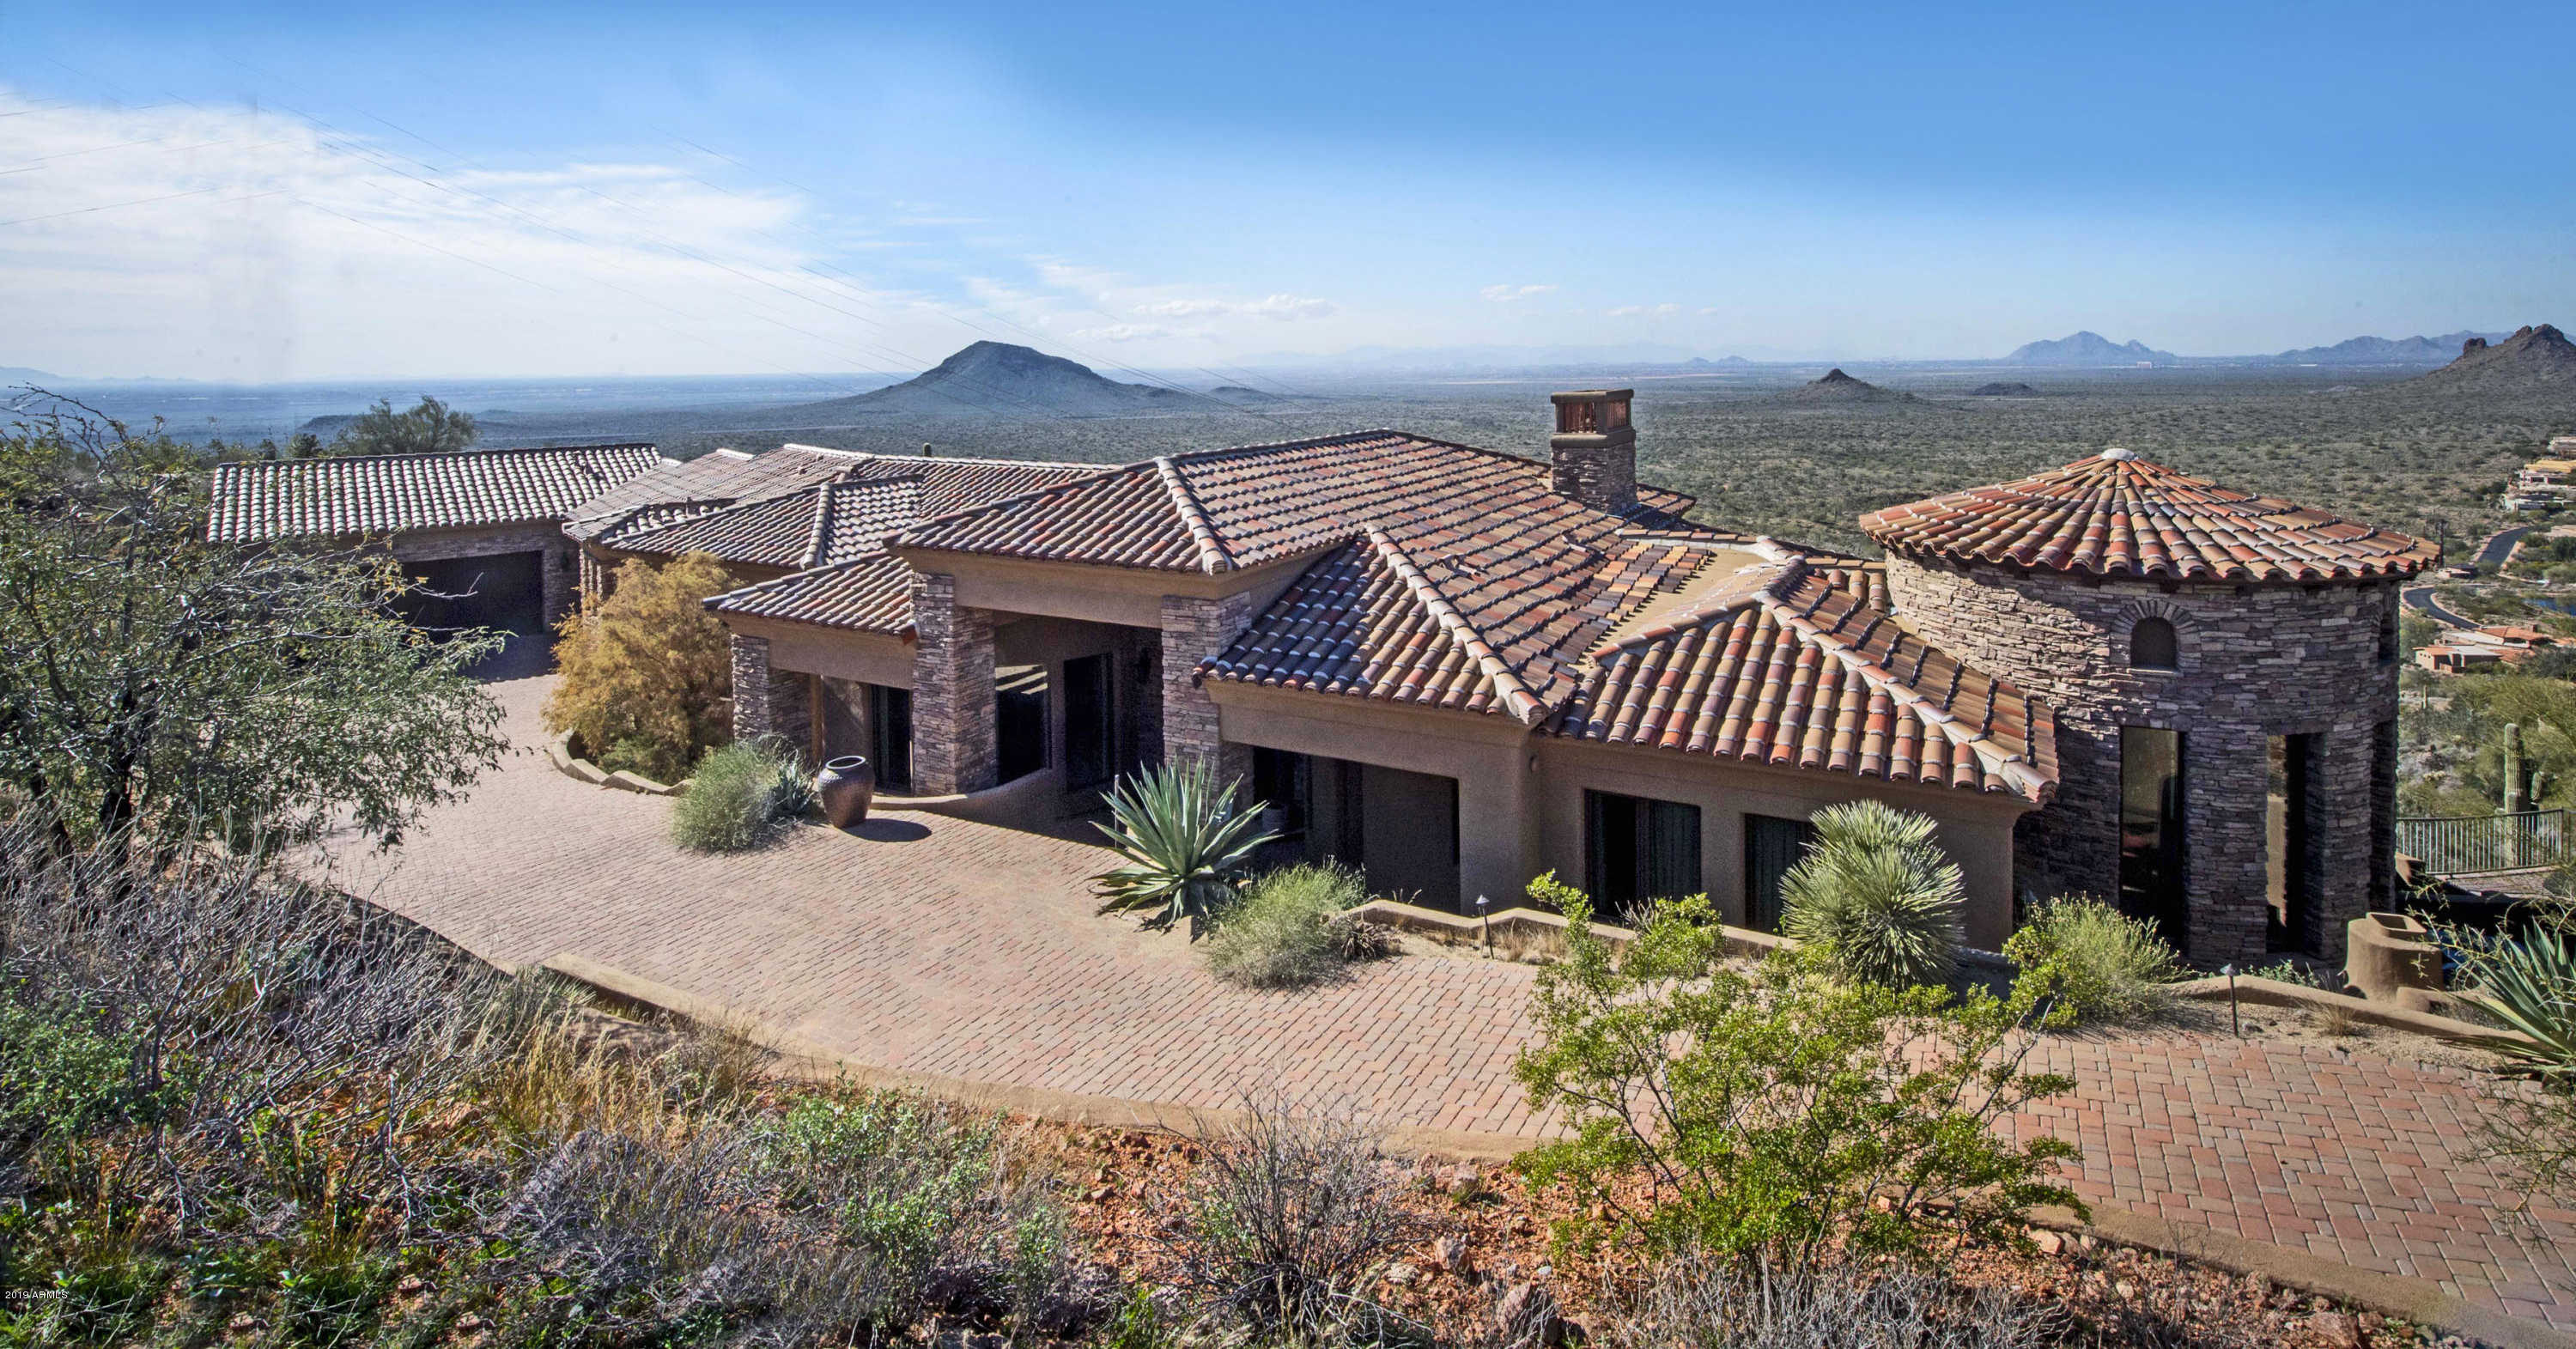 $1,995,000 - 5Br/6Ba - Home for Sale in Firerock Parcel I, Fountain Hills